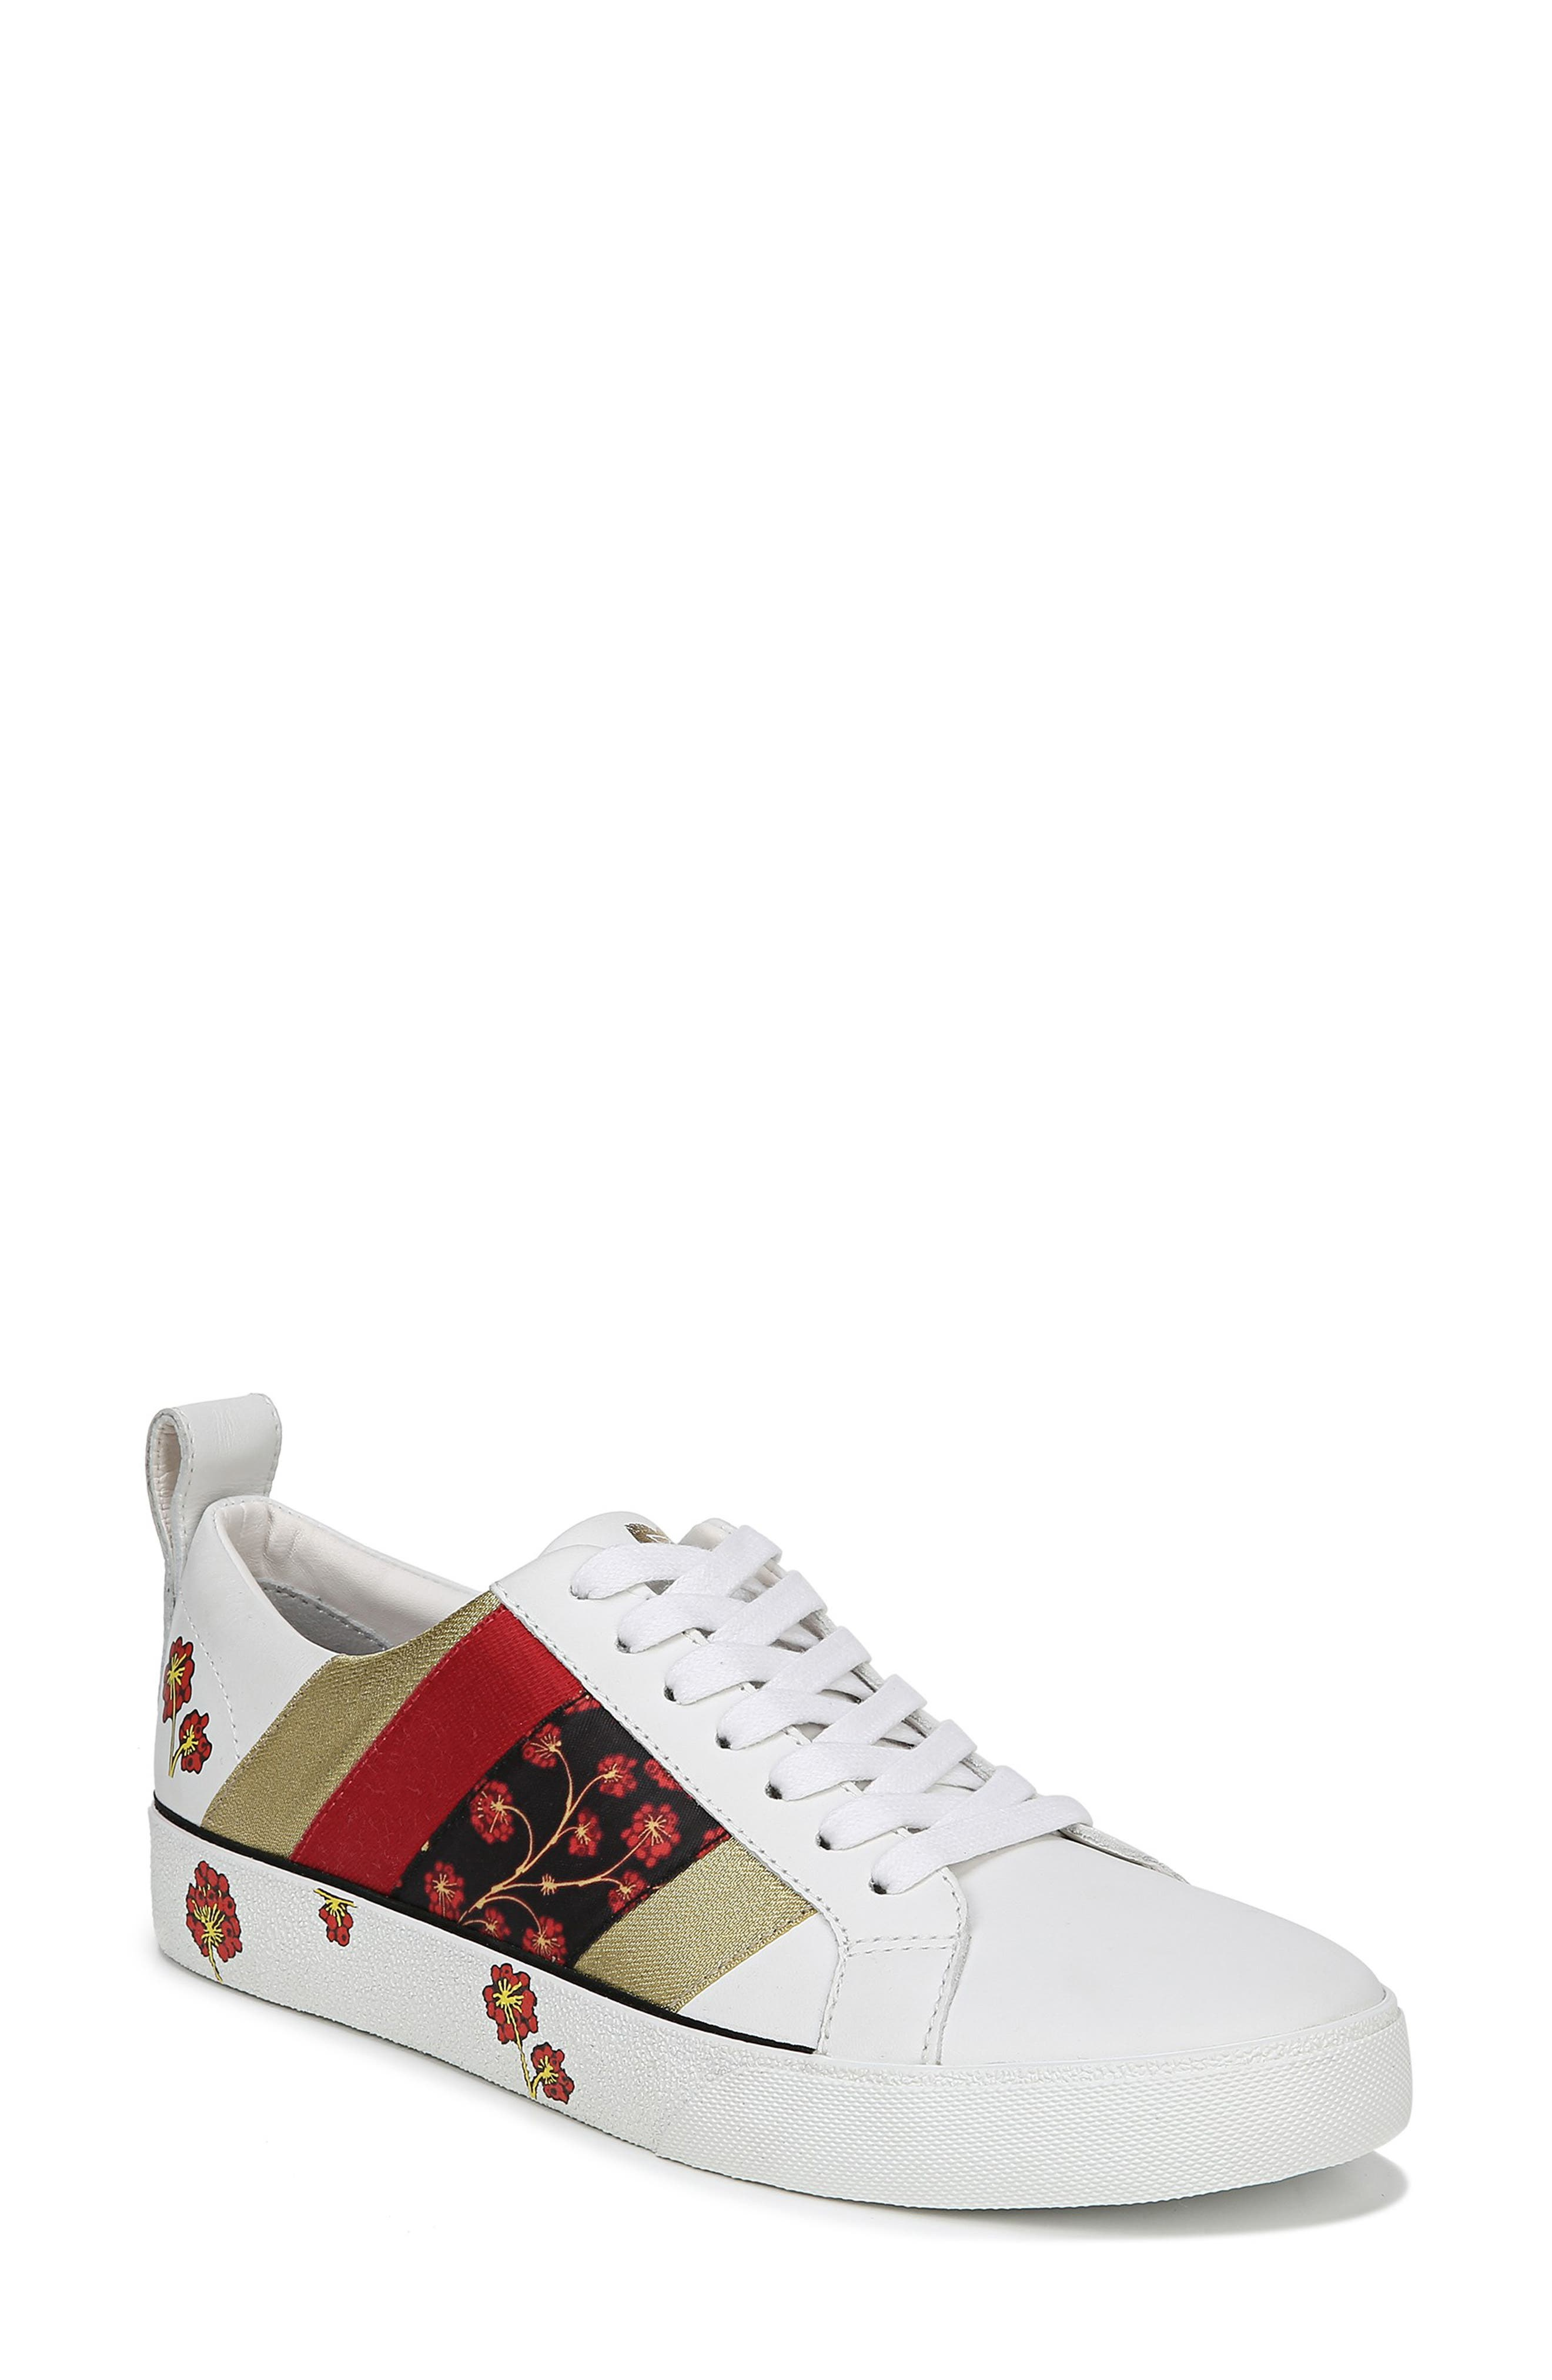 Tess Lace-Up Sneaker,                             Main thumbnail 1, color,                             WHITE/ RED